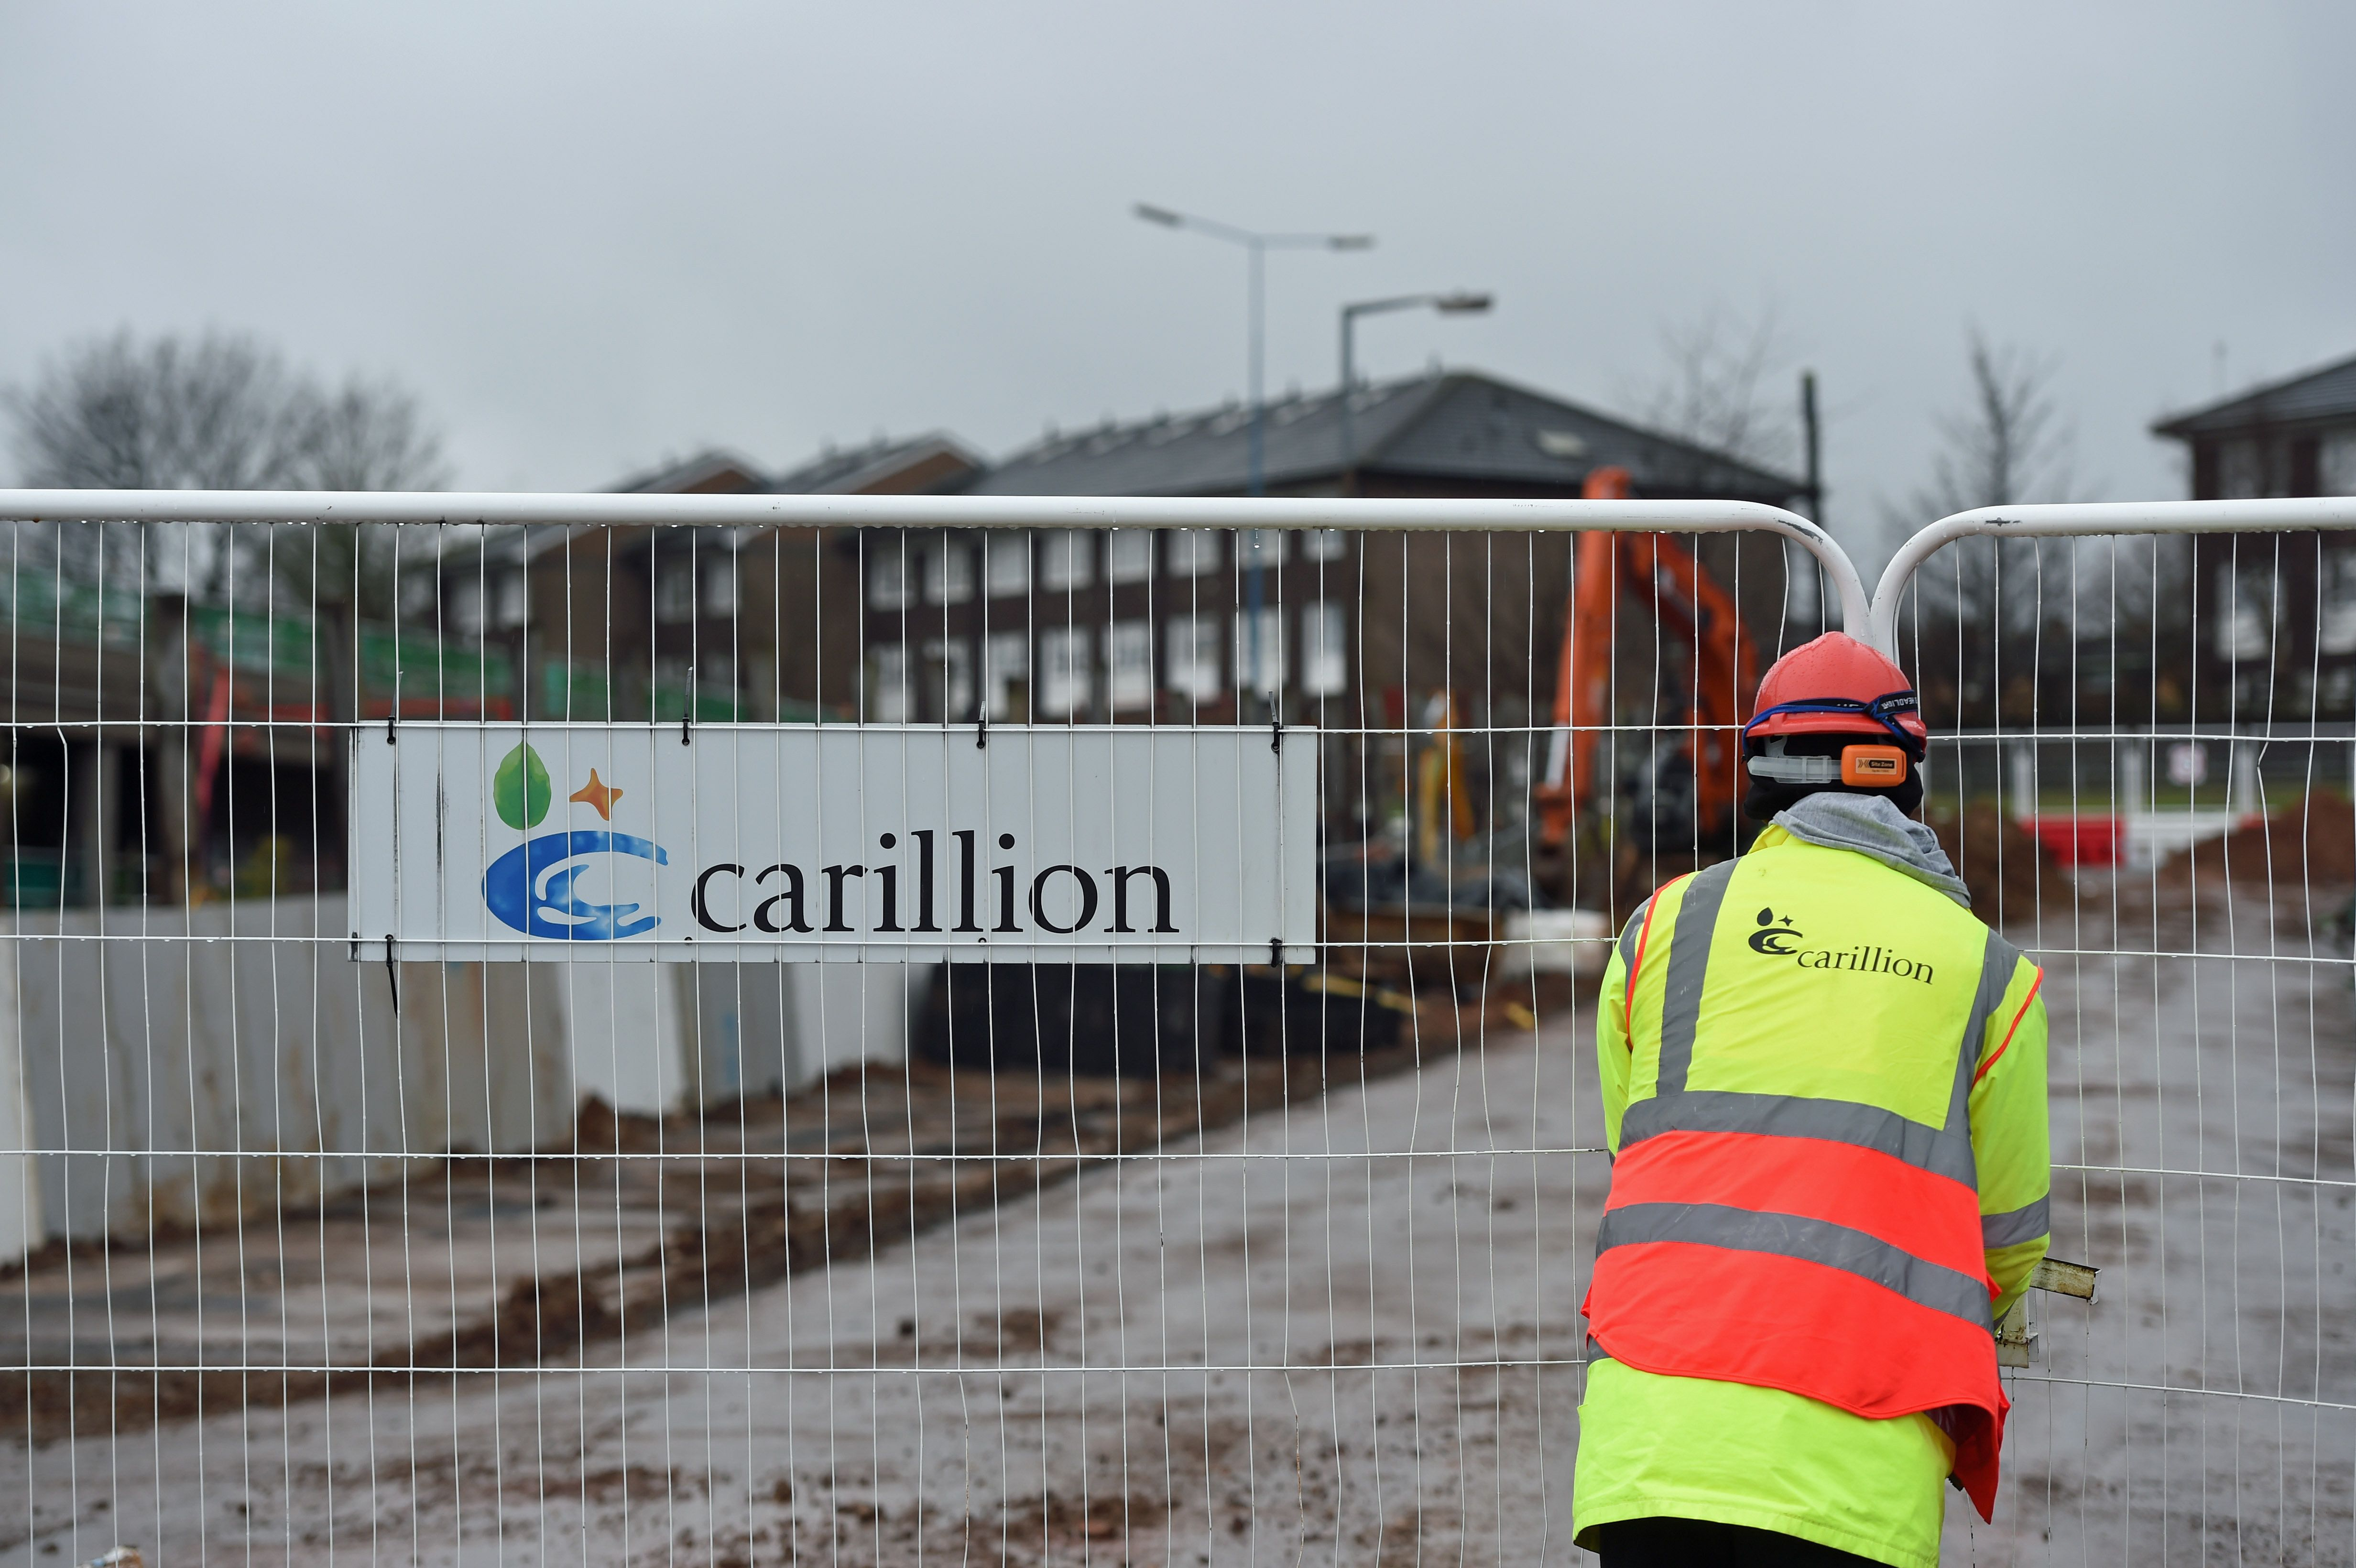 Just 2 Of 1,200 Carillion Apprentices Offered Placements By